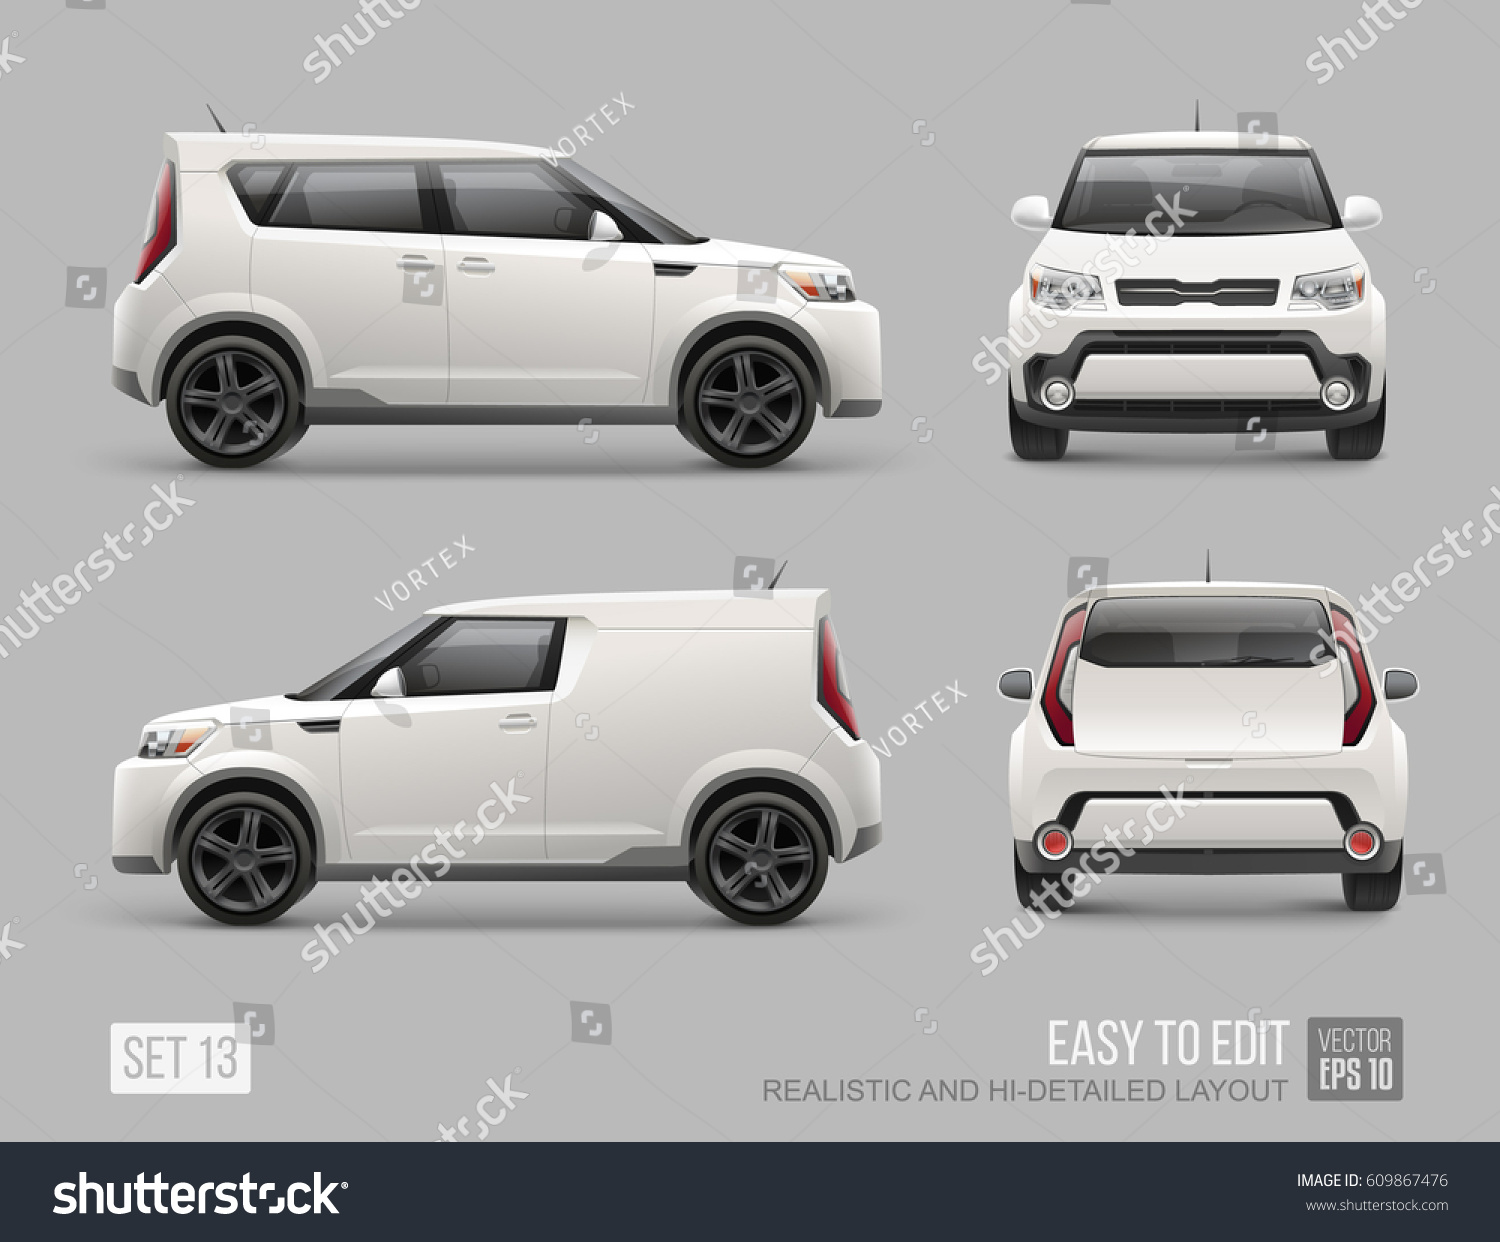 Vehicle Template - Constes.com